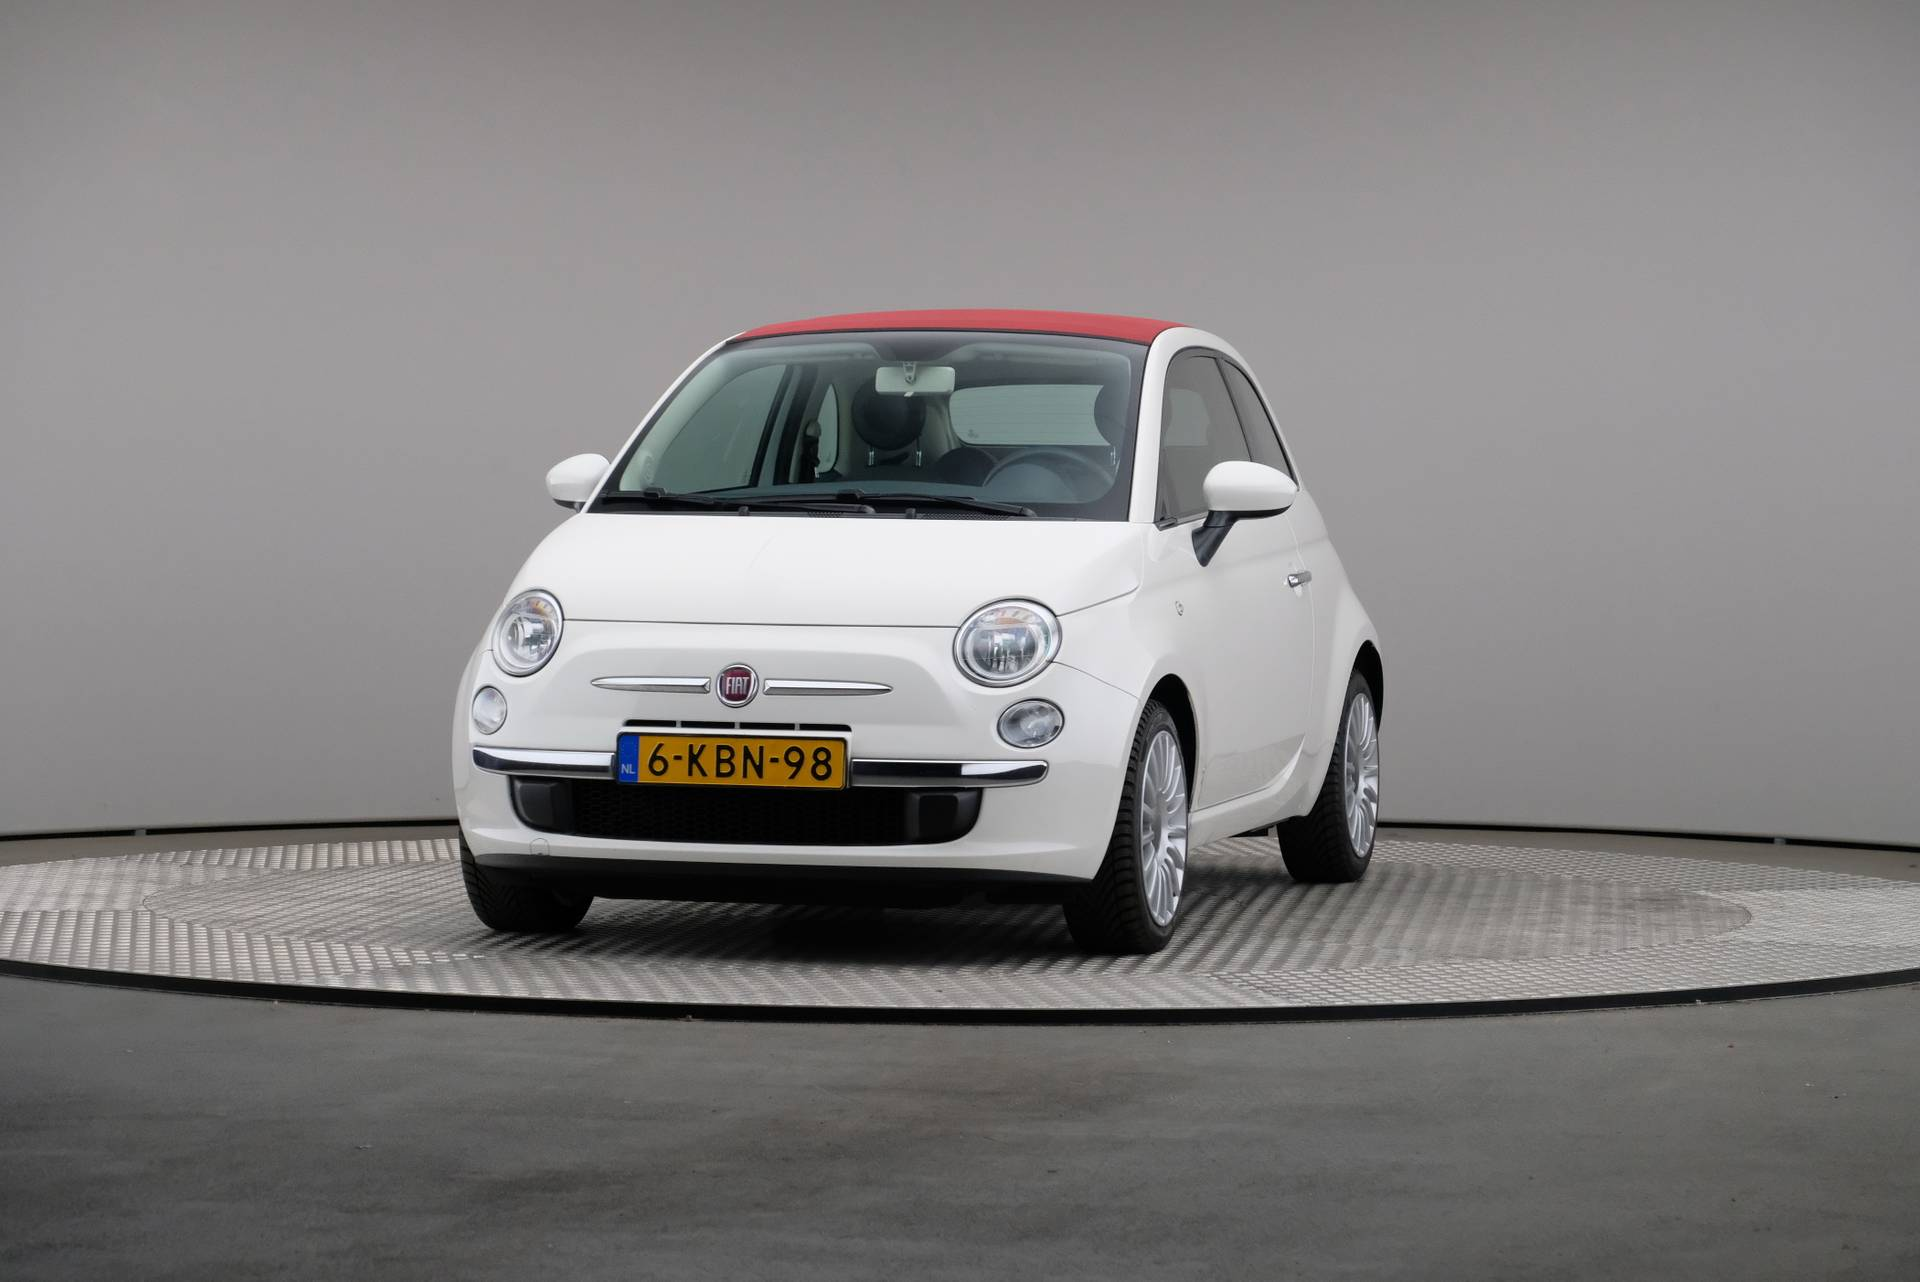 Fiat 500C TwinAir Turbo 85 Lounge, Airconditioning, 360-image34